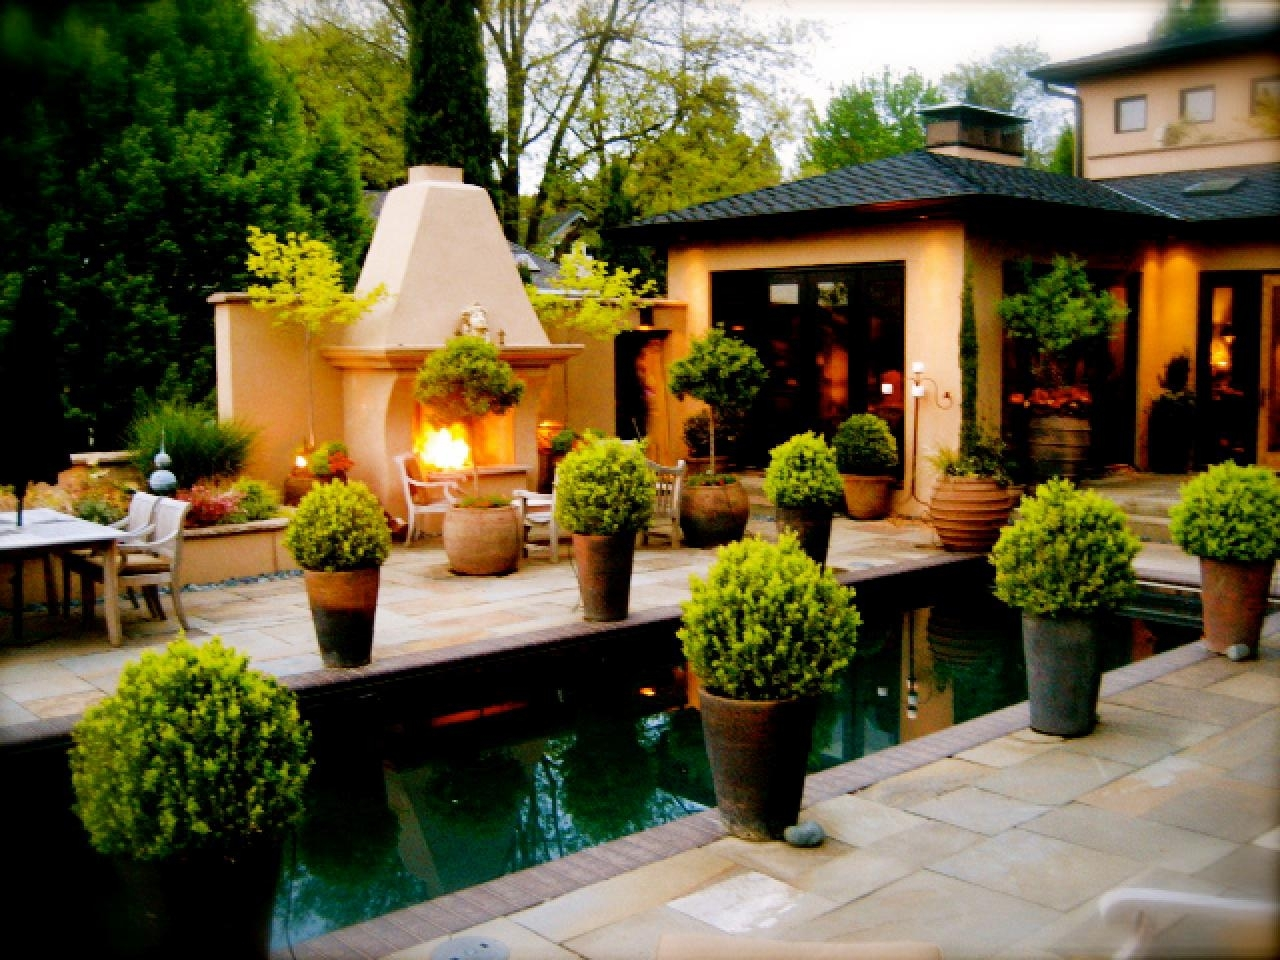 10 Nice Flower Pot Ideas For Patio %name 2020